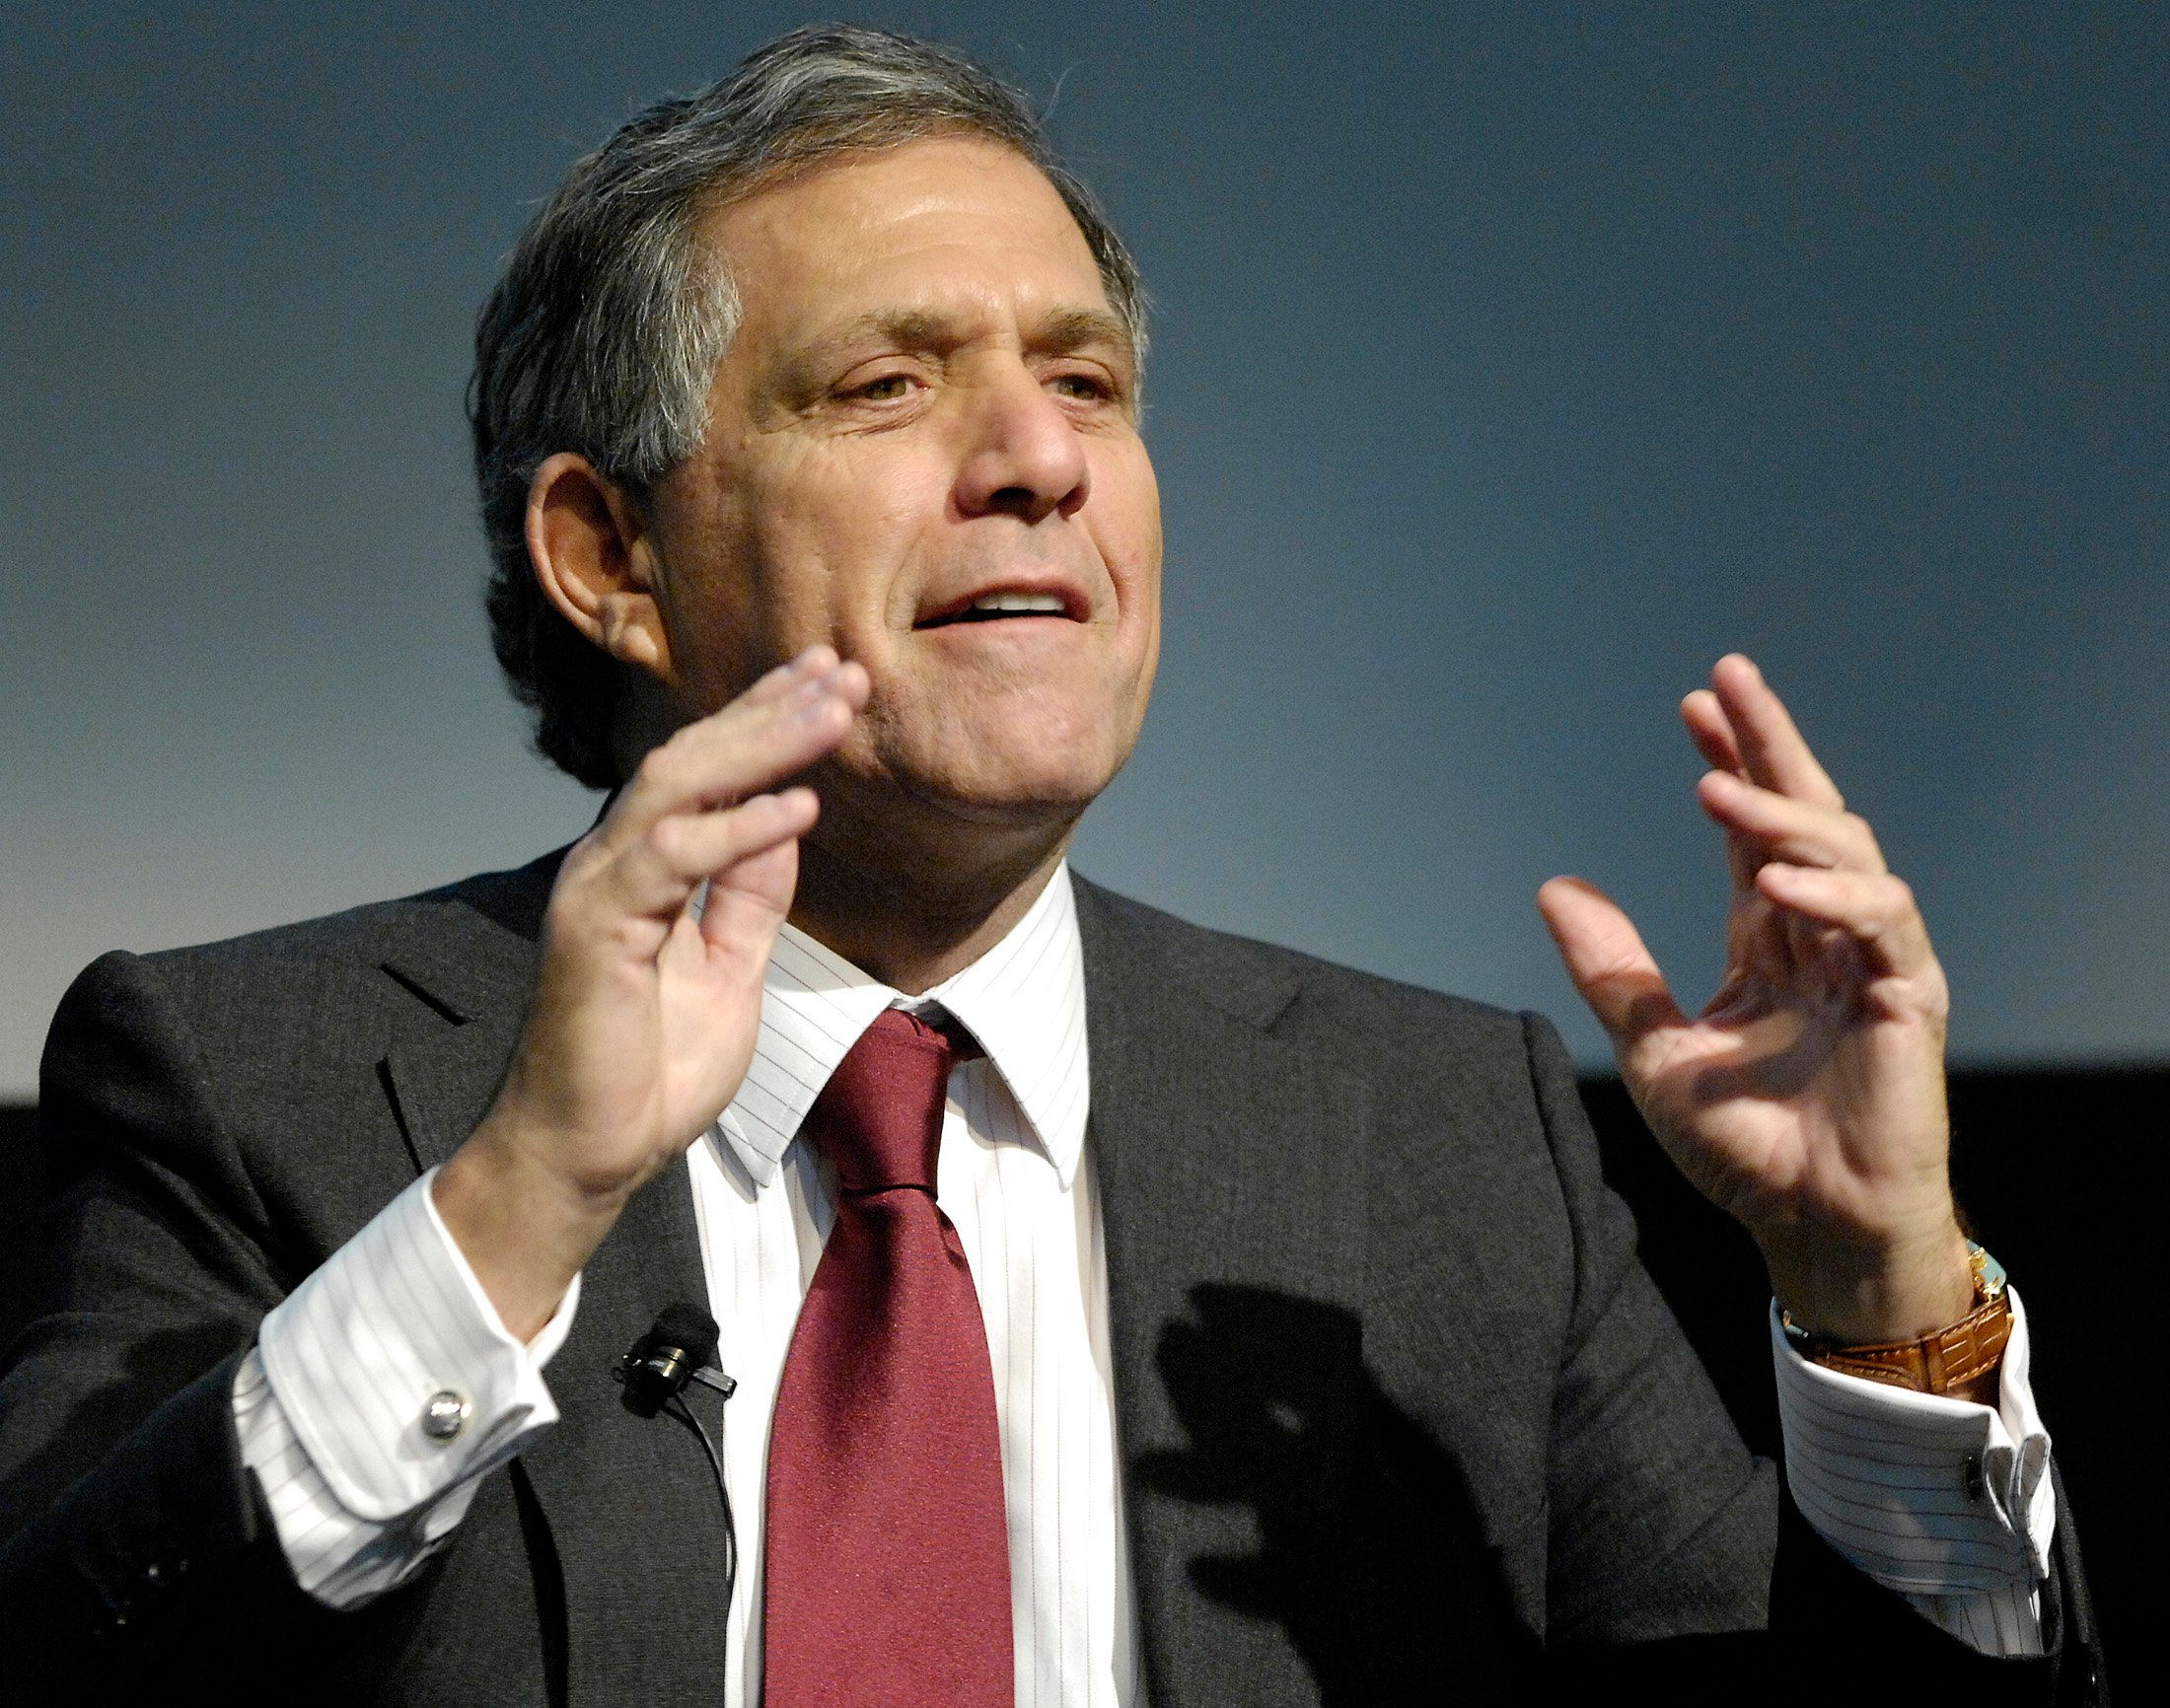 Several women have accused Les Moonves, pictured here in 2007, of harassment, intimidation and abuse.